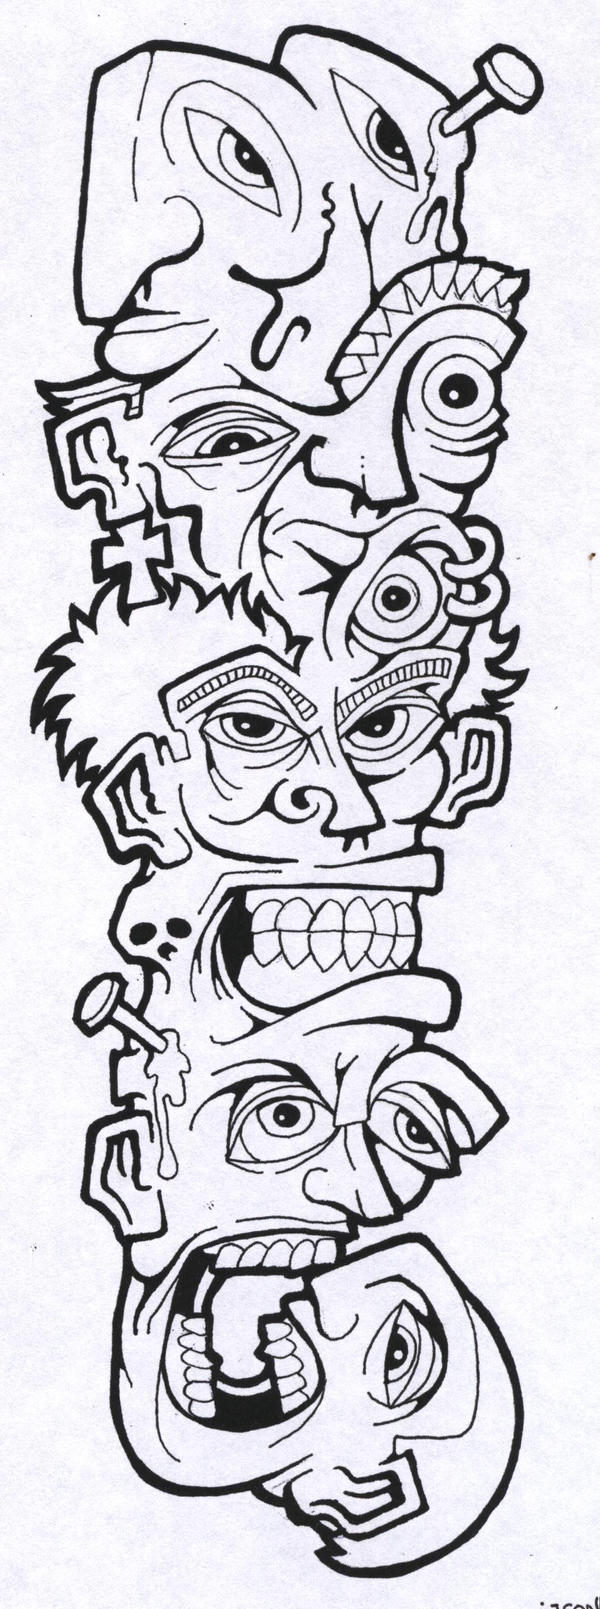 New Line Art Design : Tattoo flash line art by jakehawn on deviantart